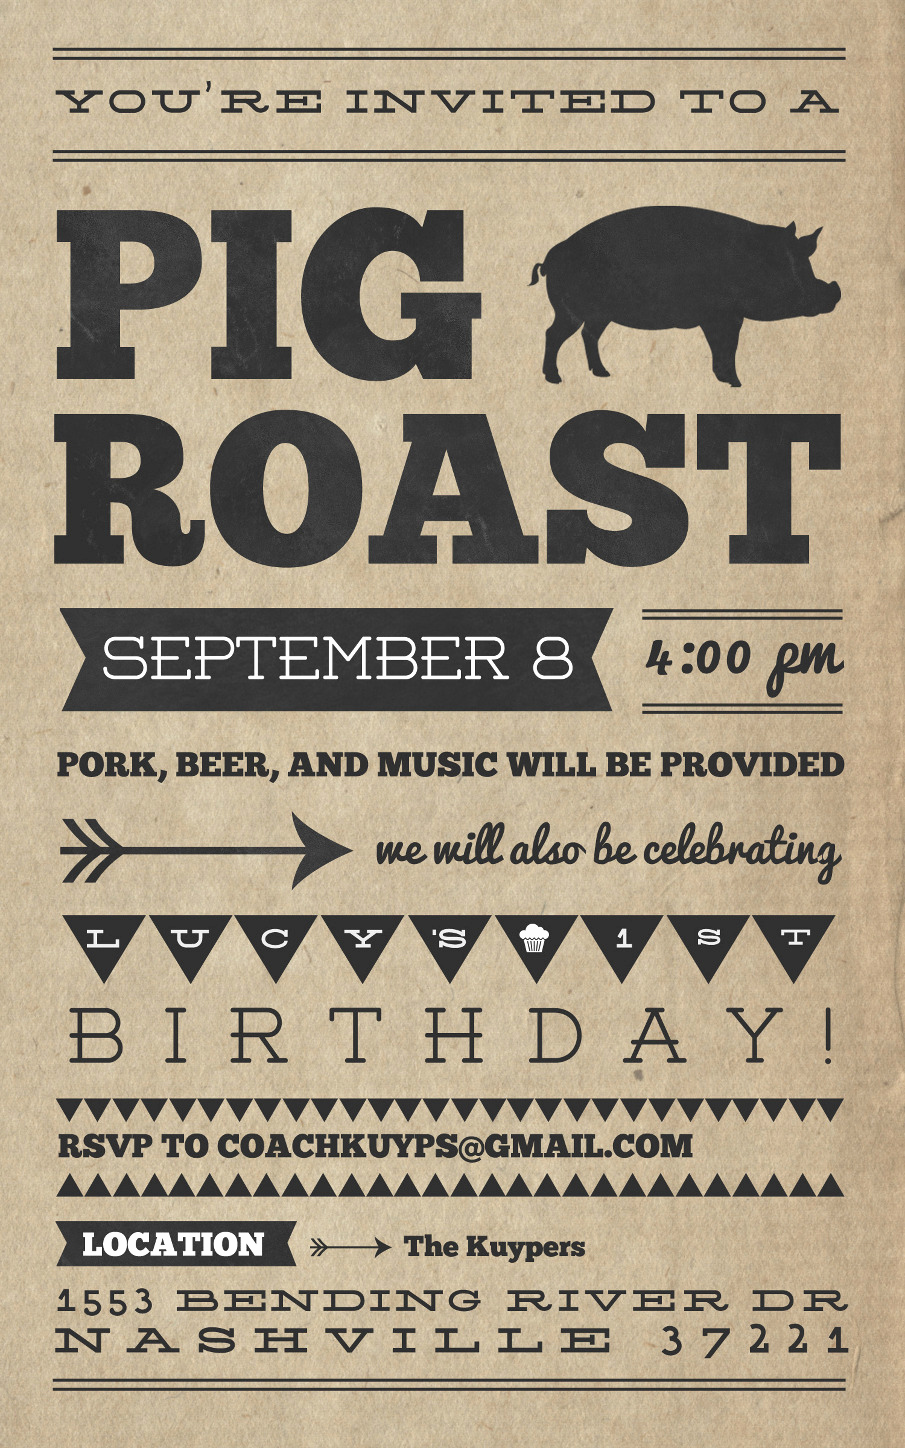 Pig Roast Invitation Template Free Fresh Pig Roast Invitation Templates